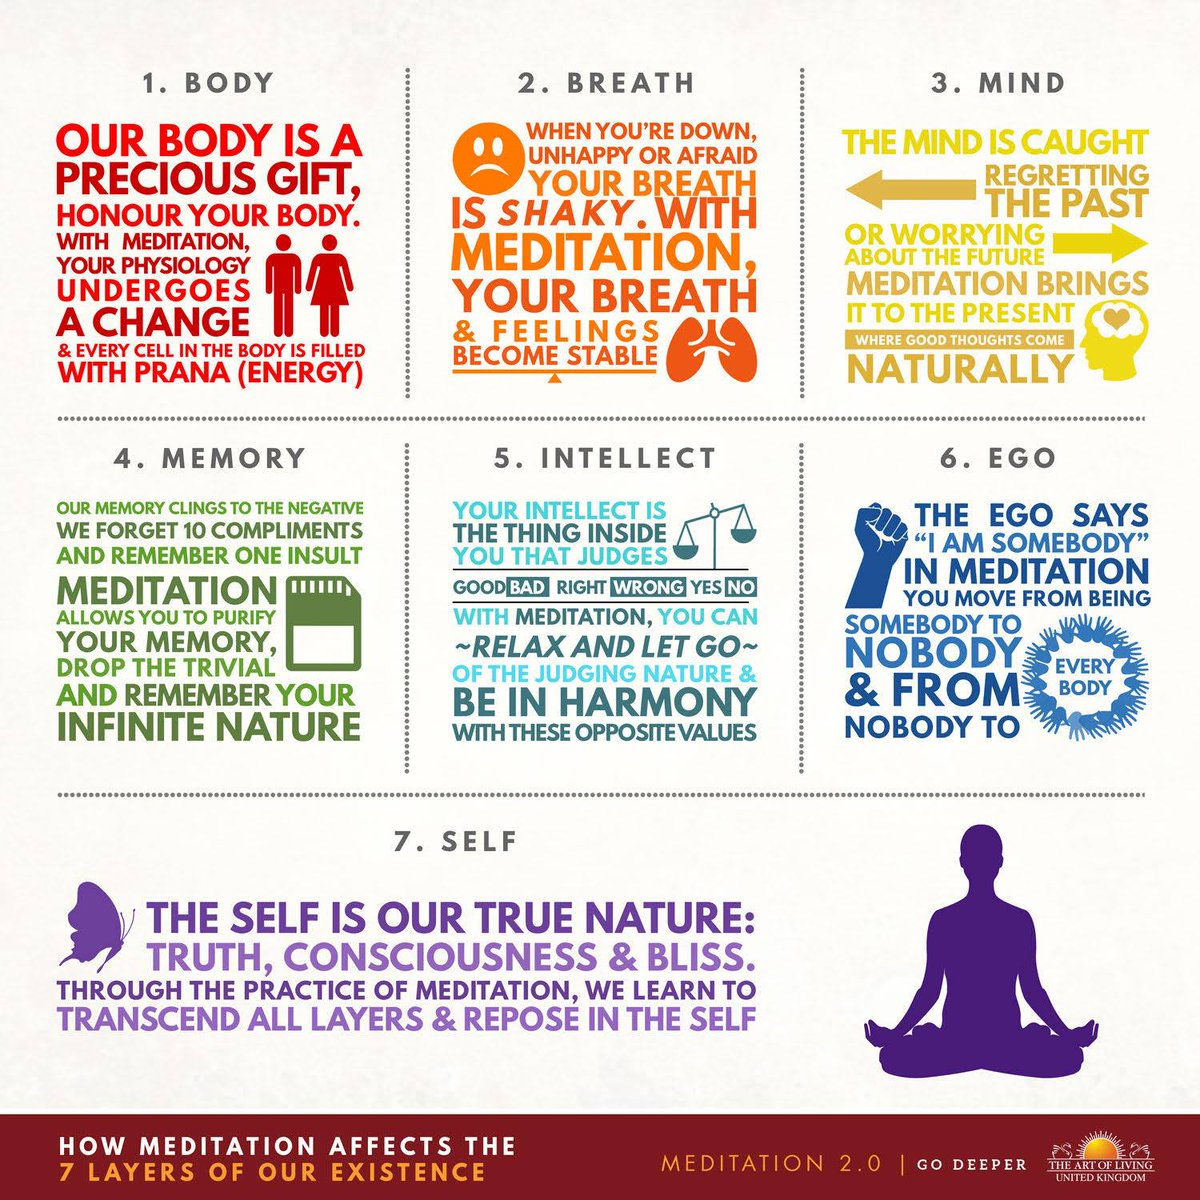 Art Of Living UK On Twitter Meditation Affects The 7 Layers Your Existence Meditate With Sri Tco OKdSfT0yRS SriSriInUk